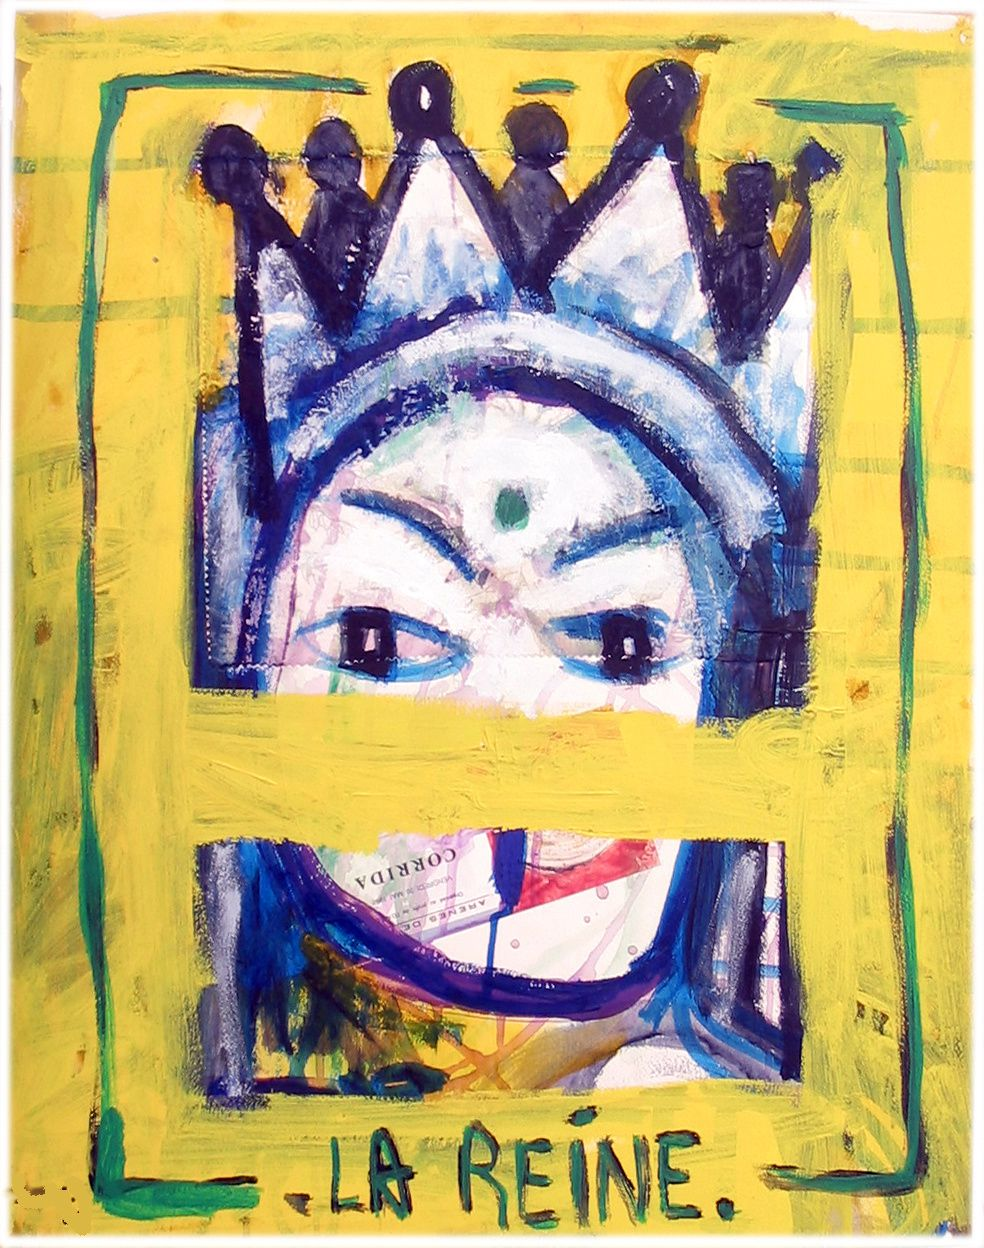 14 - LA REINE -Technique mixte - 65 x 50 cm.